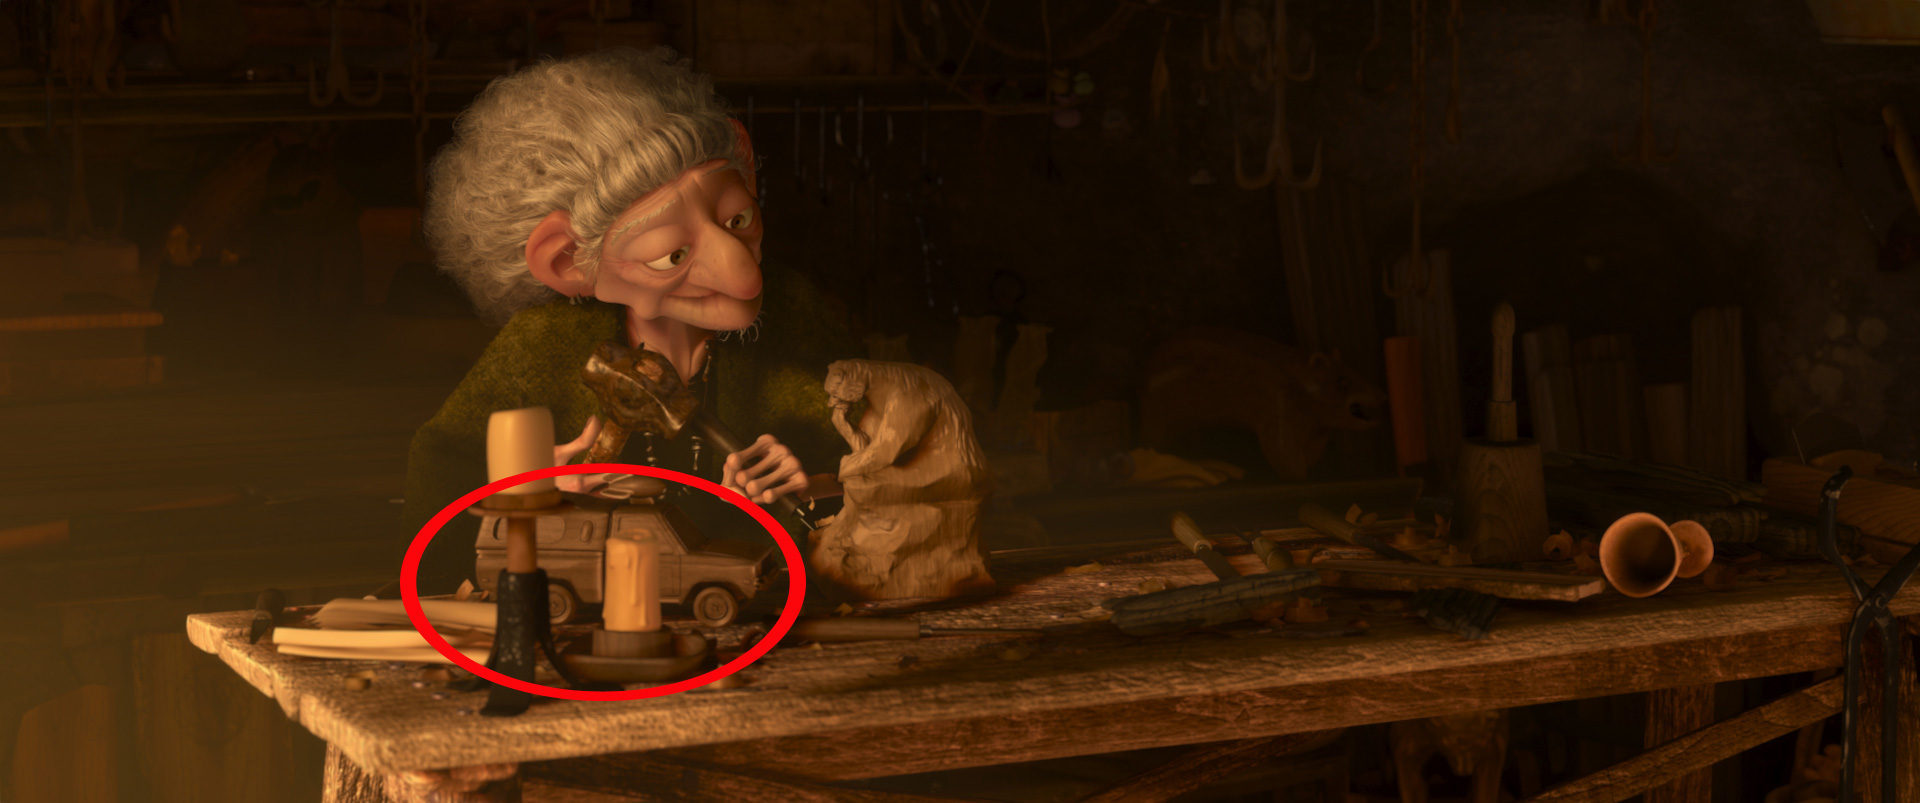 The Easter Eggs In Brave Up Moana And Other Disney